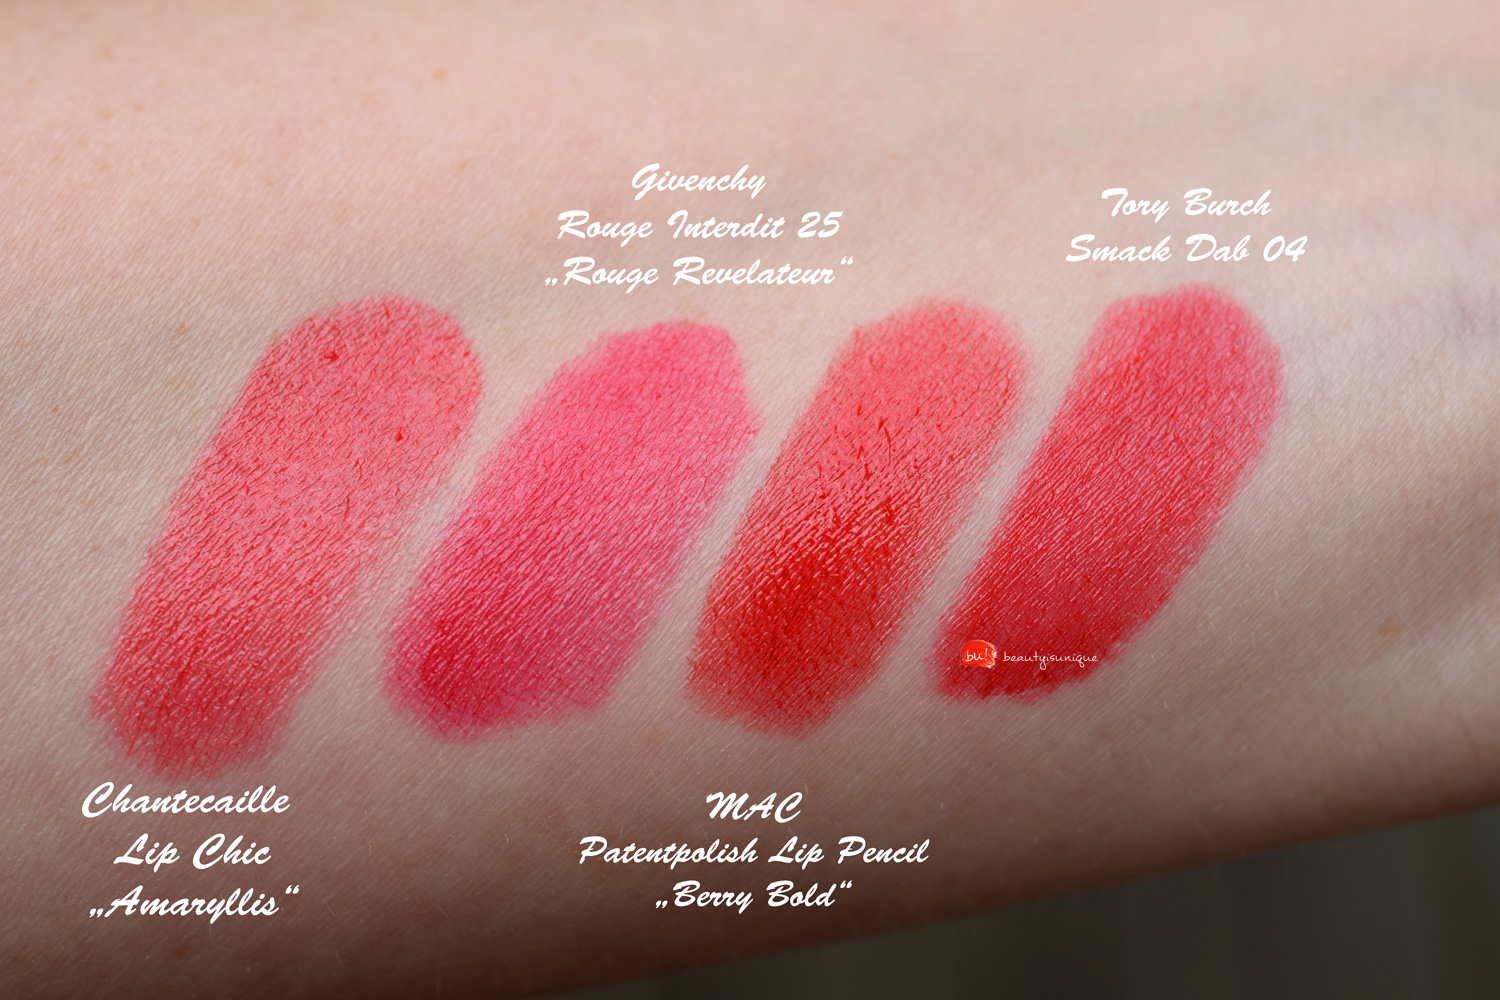 Givenchy-marble-lipstick-swatches